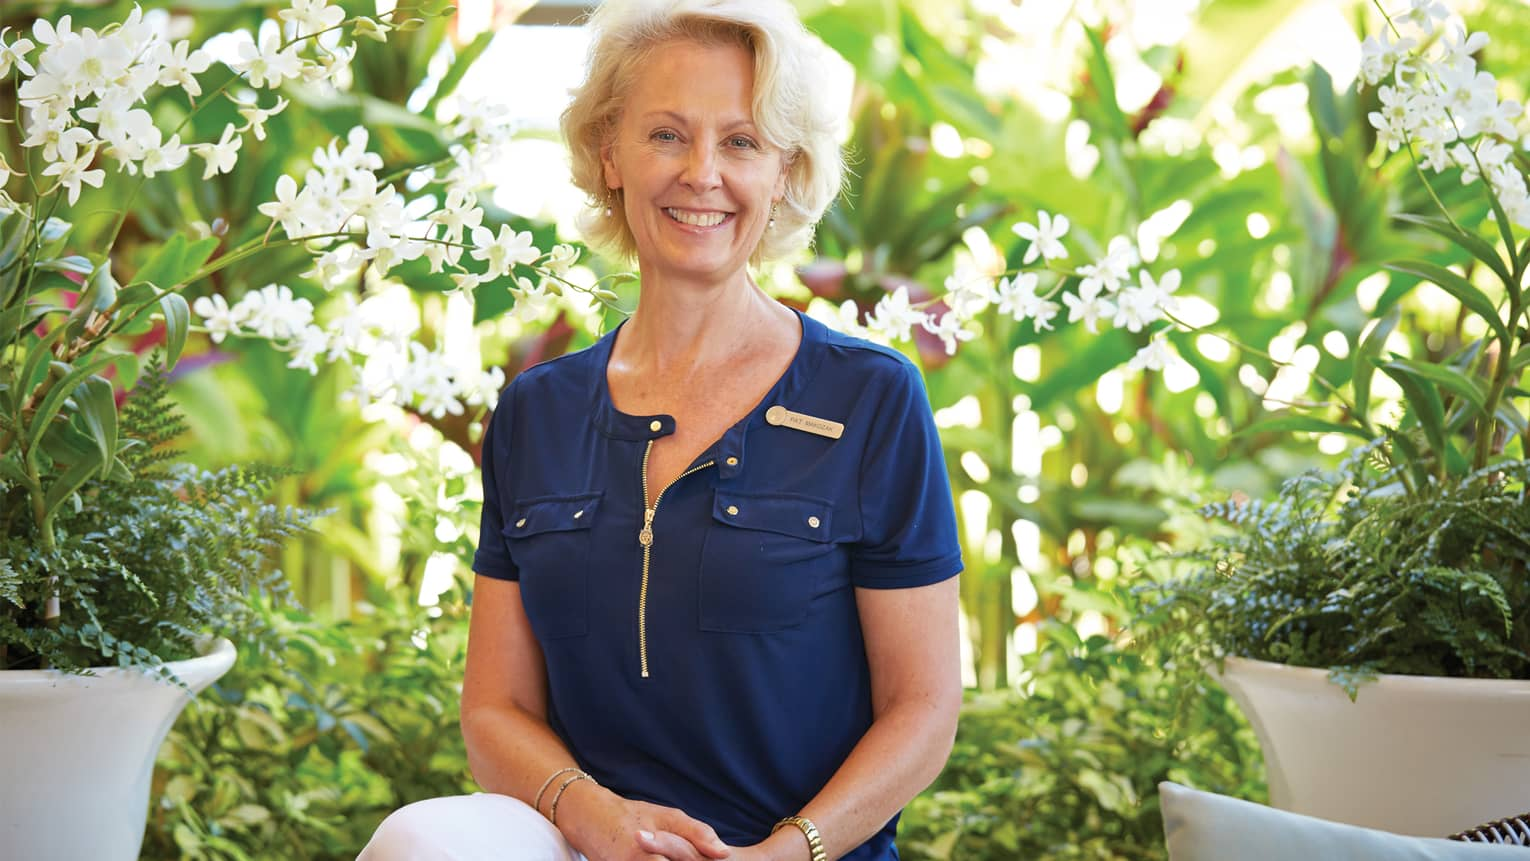 Portrait photo of Pat Makozak, Senior Spa Director between planters with tropical white flowers